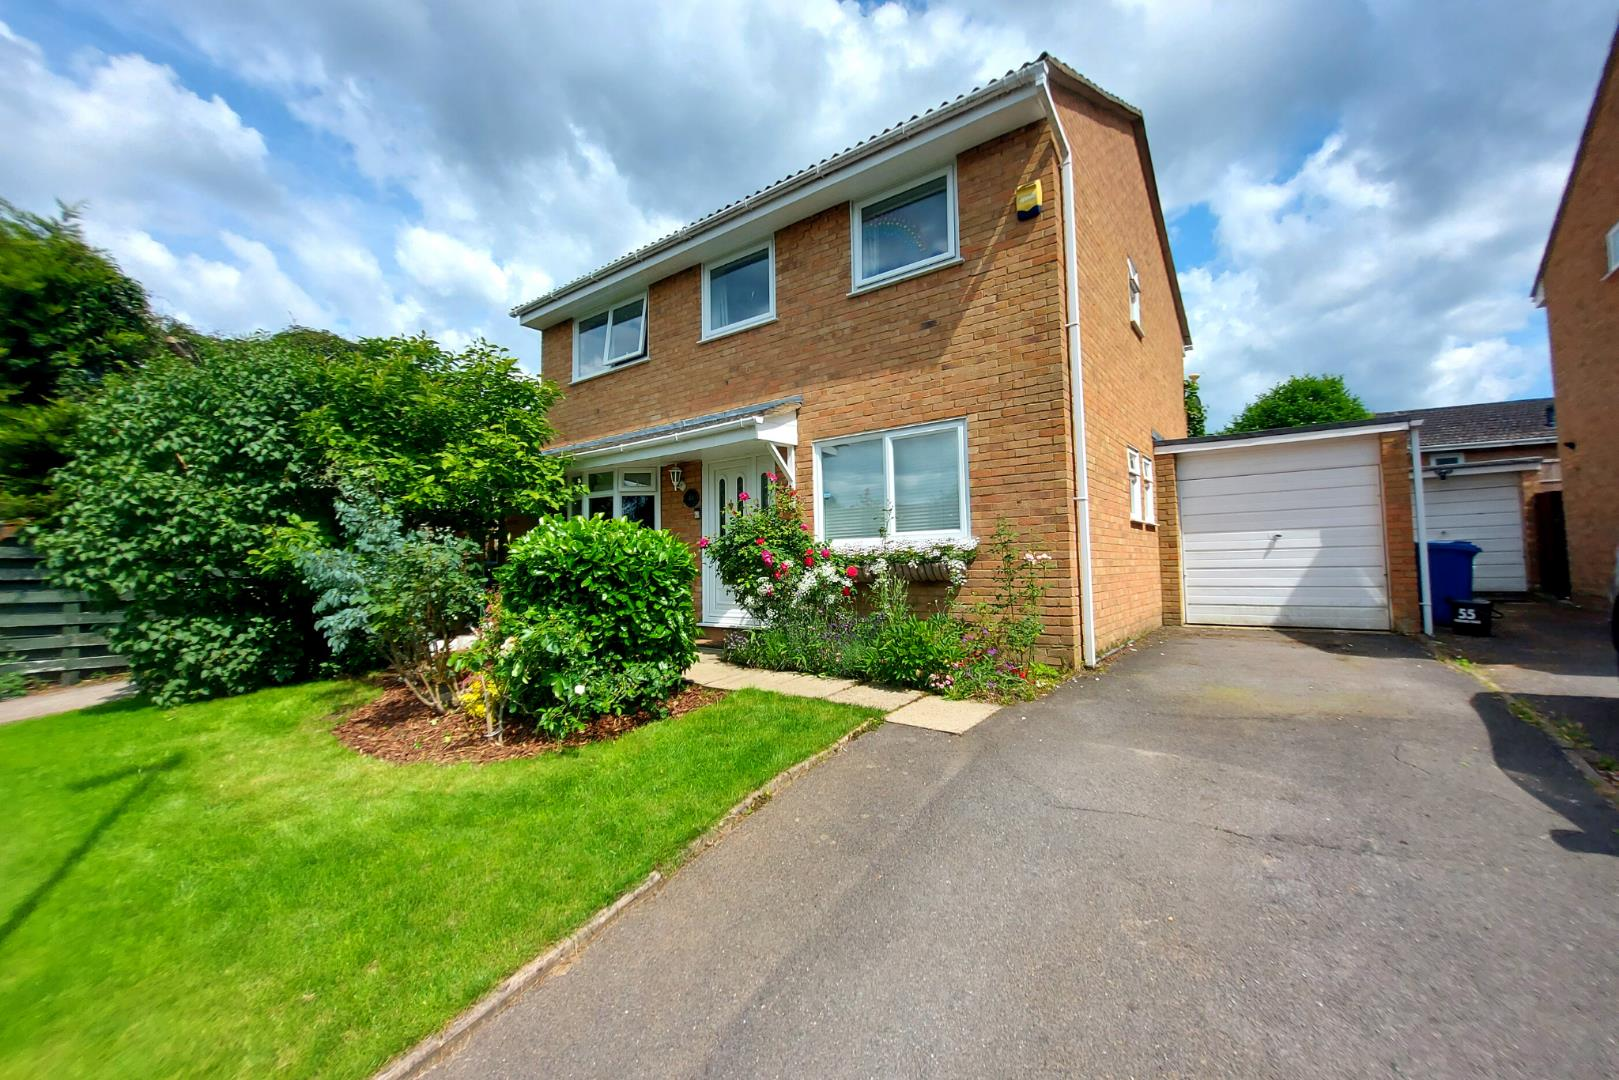 4 bed house for sale in Owlsmoor 1